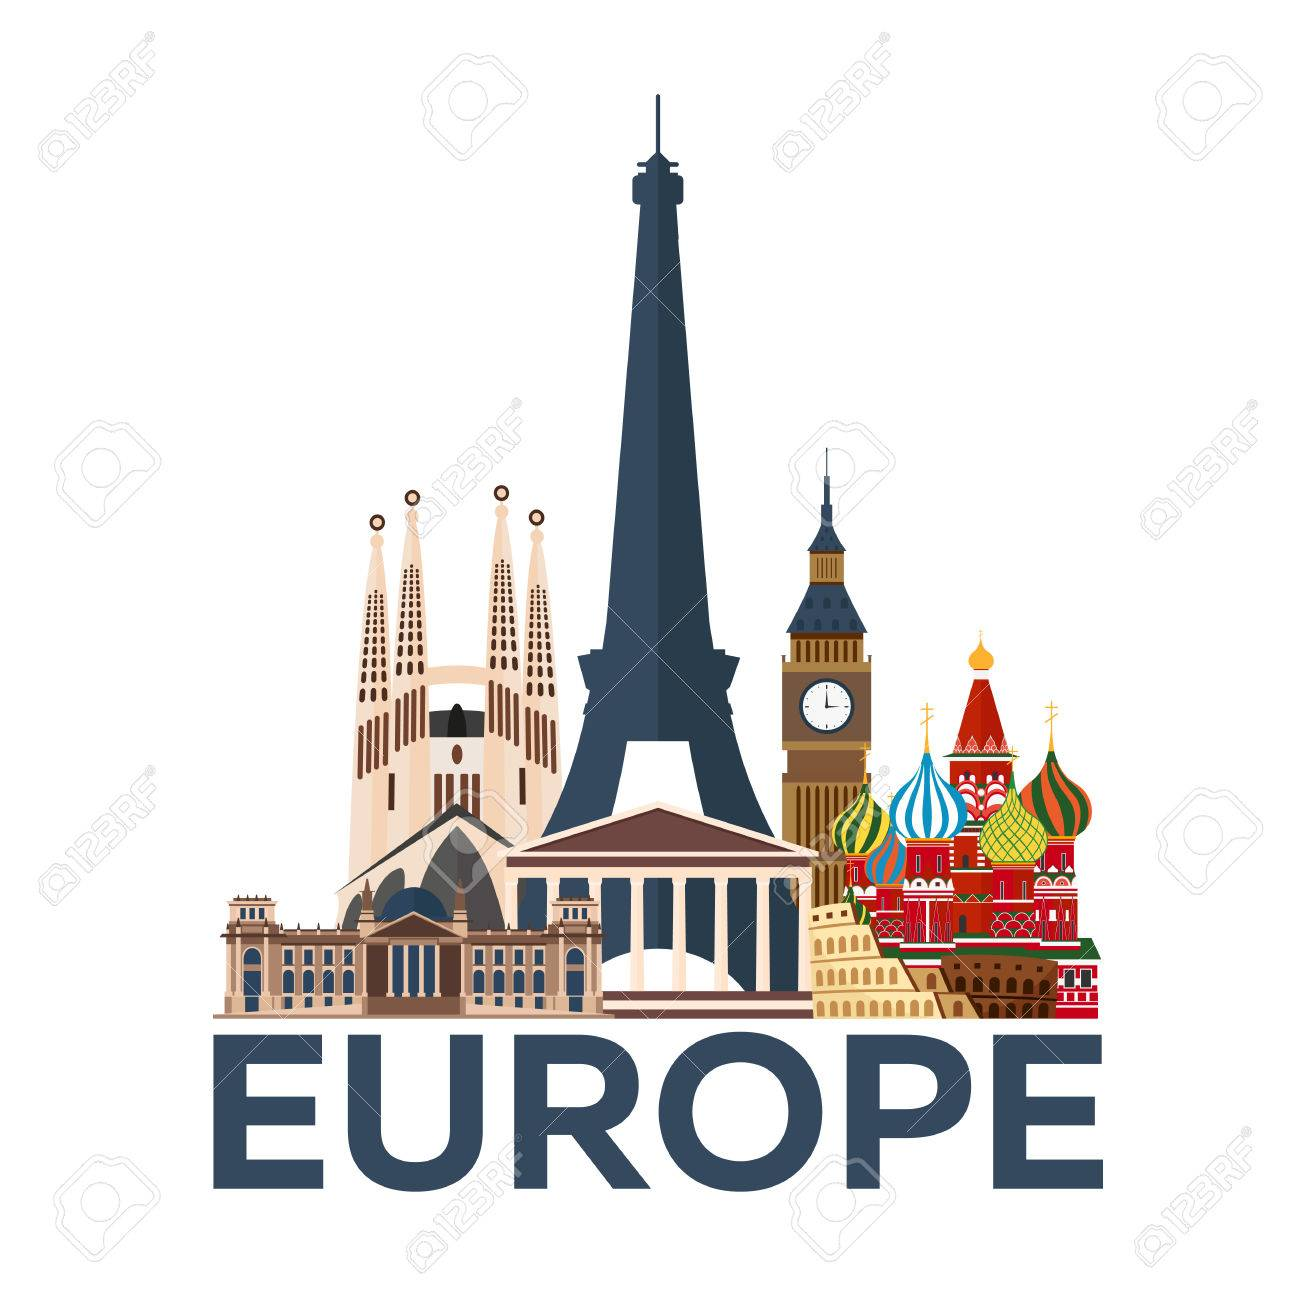 Europe clipart travel europe. Cliparts making the web